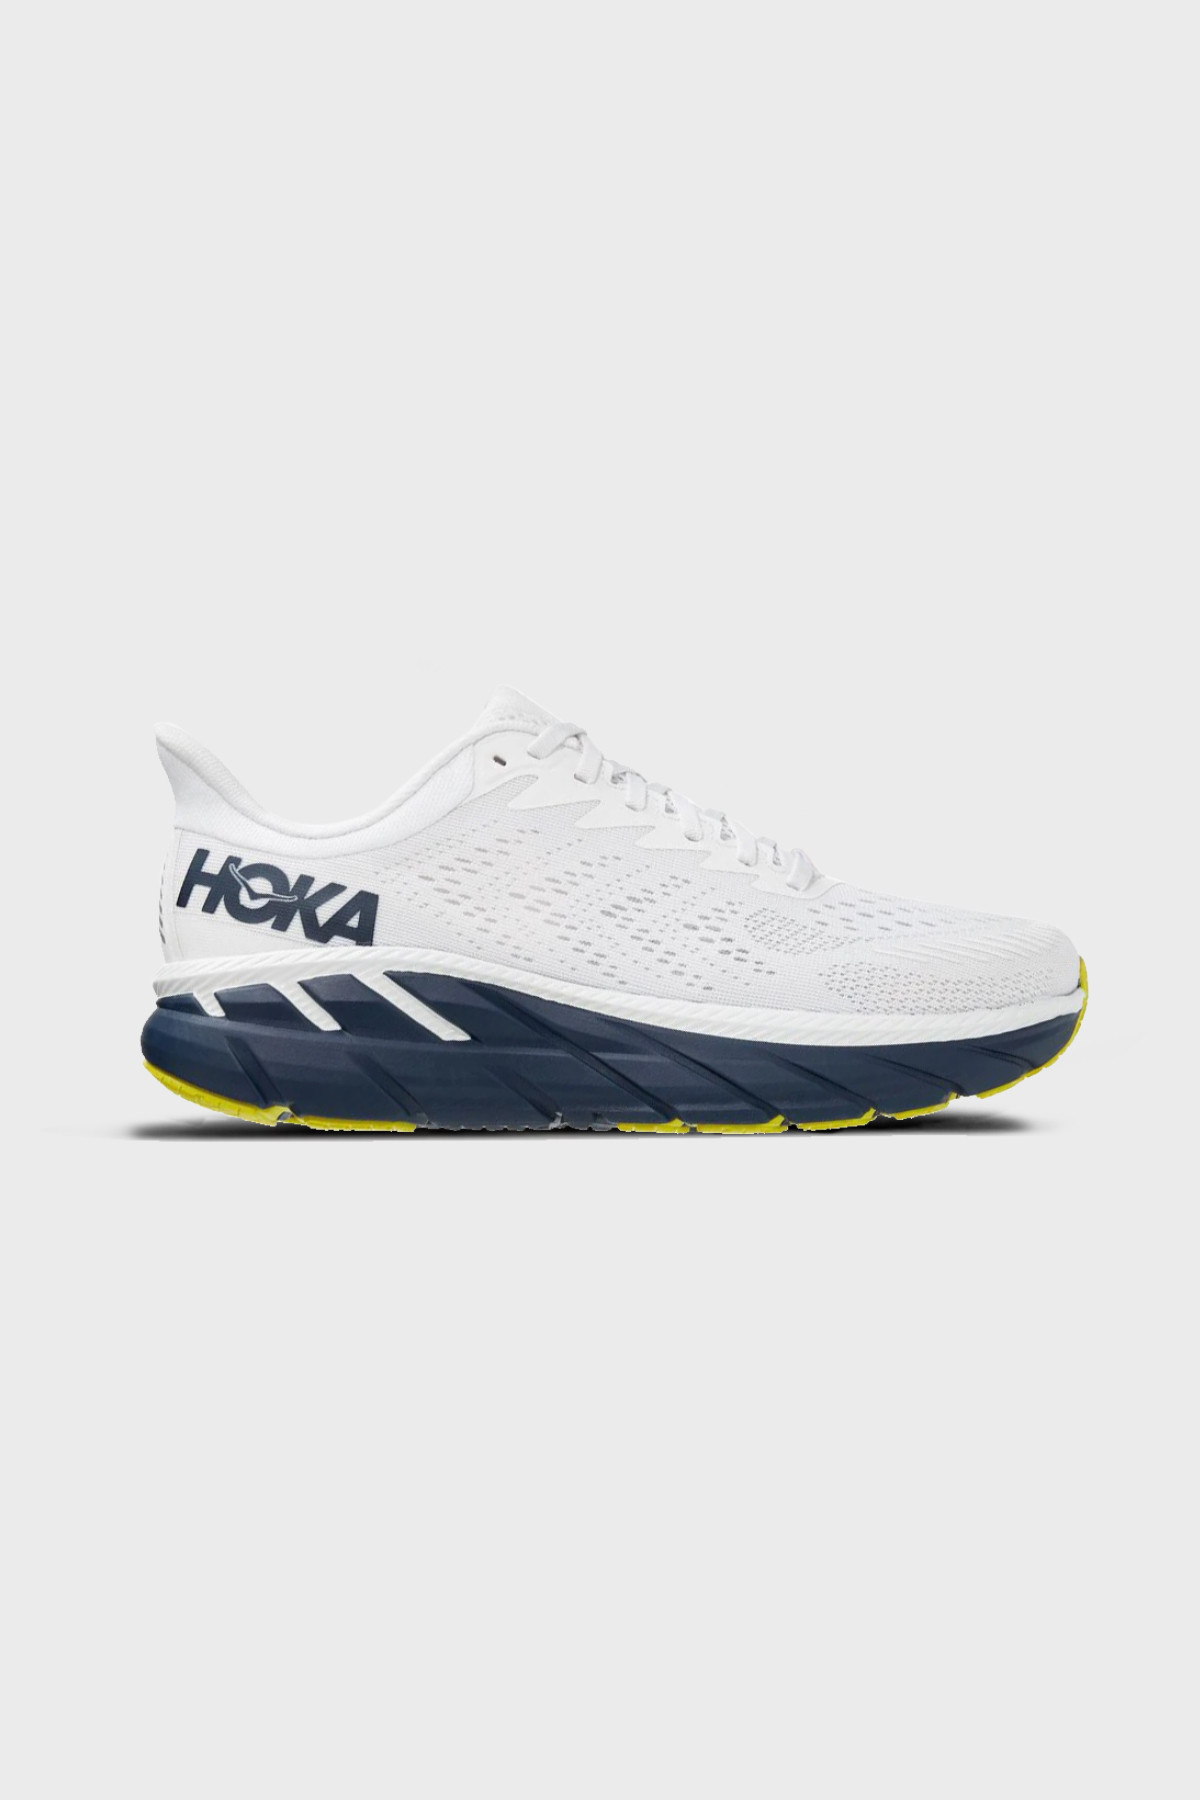 Hoka One One - Clifton 7 - WHITE BLACK IRIS